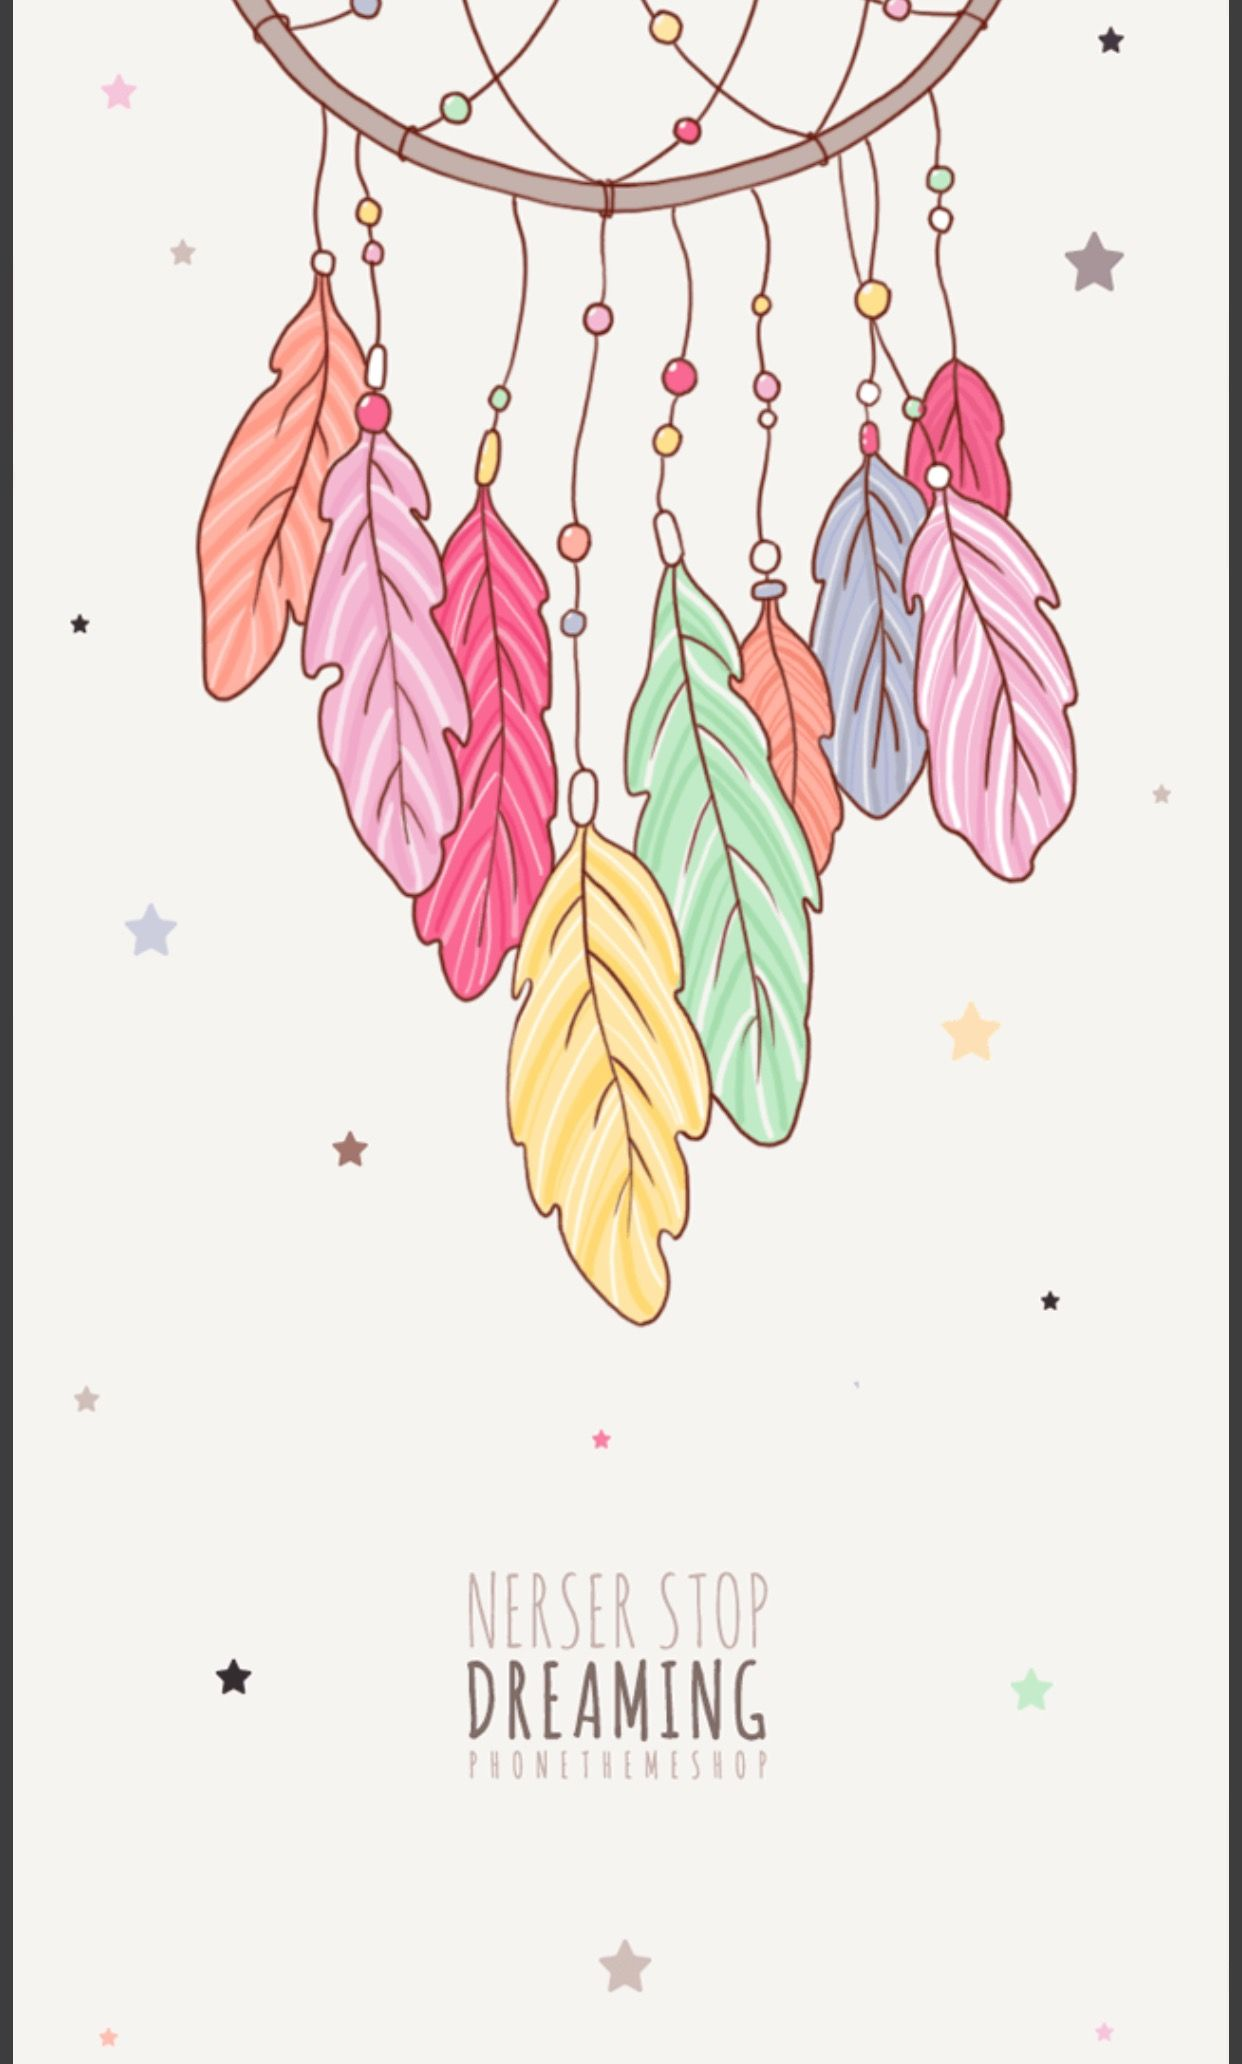 Pin By Kiki On - Pinterest - Wallpaper, Drawings And